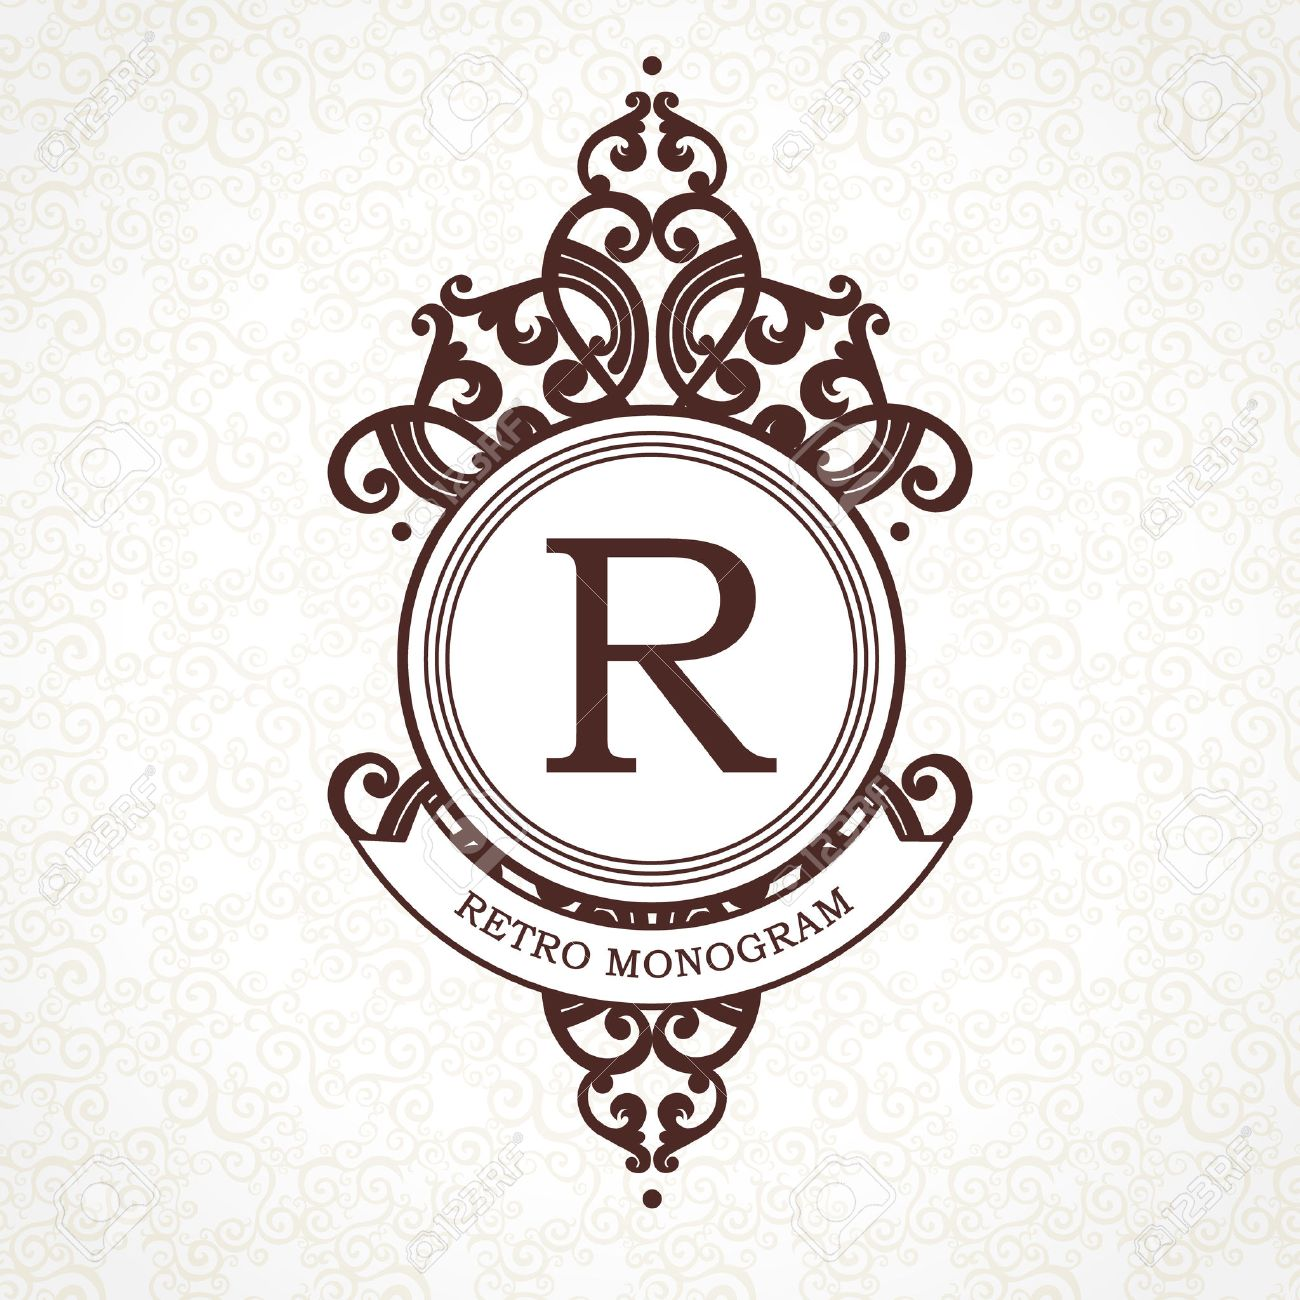 Vector logo template in Victorian style. Ornate element for design. Place for company name and slogan. Ornament floral vignette for business card, wedding invitations, certificate, business sign. - 51133109